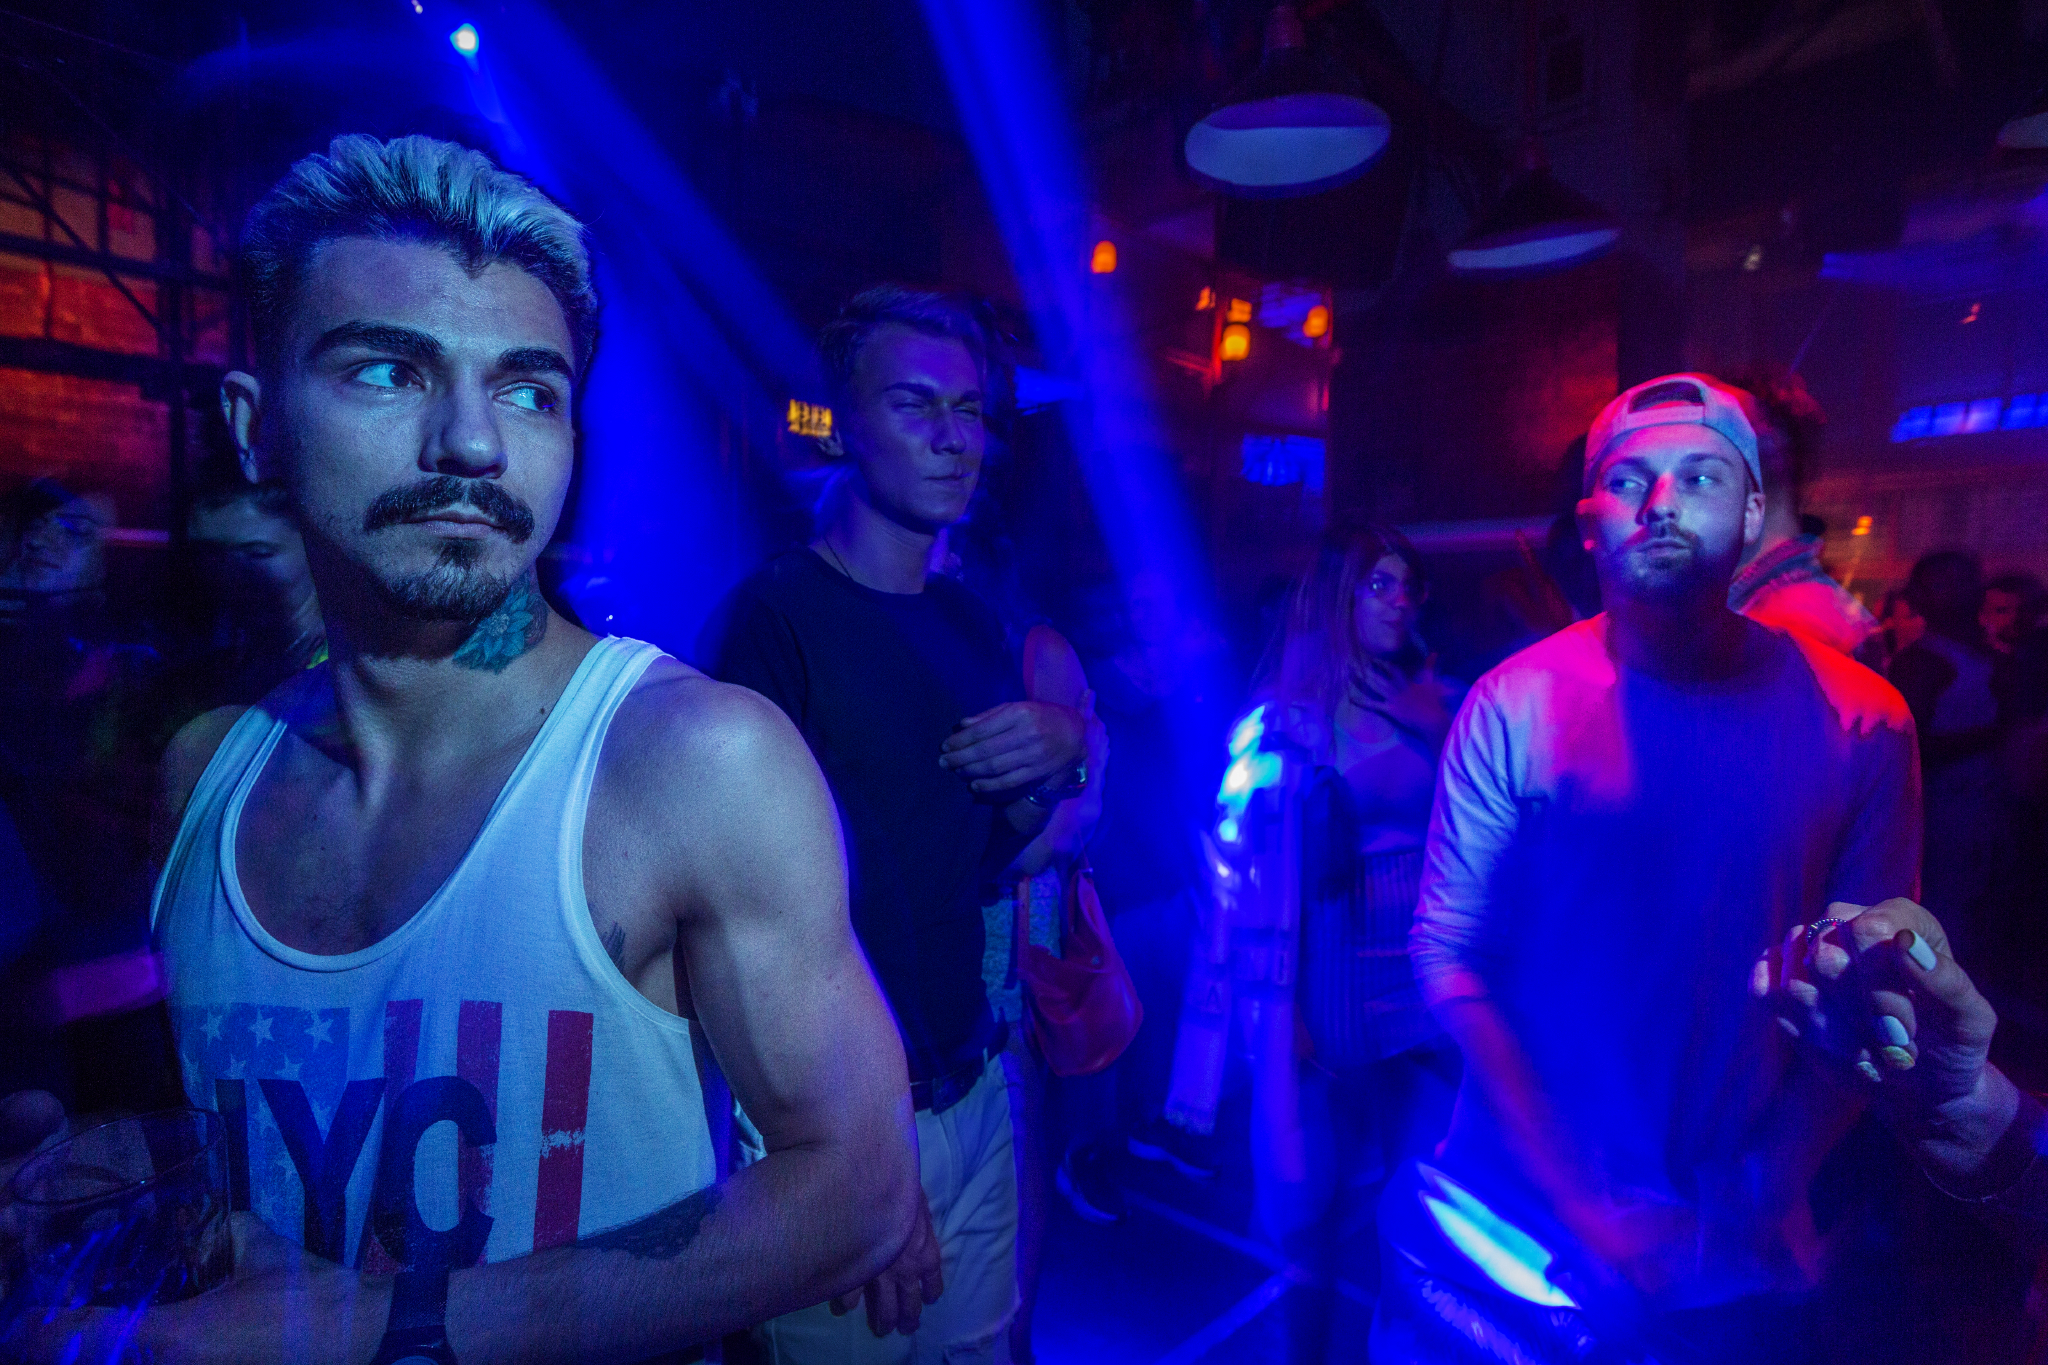 "At Propaganda, a popular club near the Kremlin in Moscow, Sunday is gay night, an event that draws heterosexual men and women as well. After the fall of the Soviet Union, many Russians began to more openly express their sexual orientation and demand for gay rights, but parliament and Putin banned promoting ""nontraditional relations.""  Moscow, Russia"